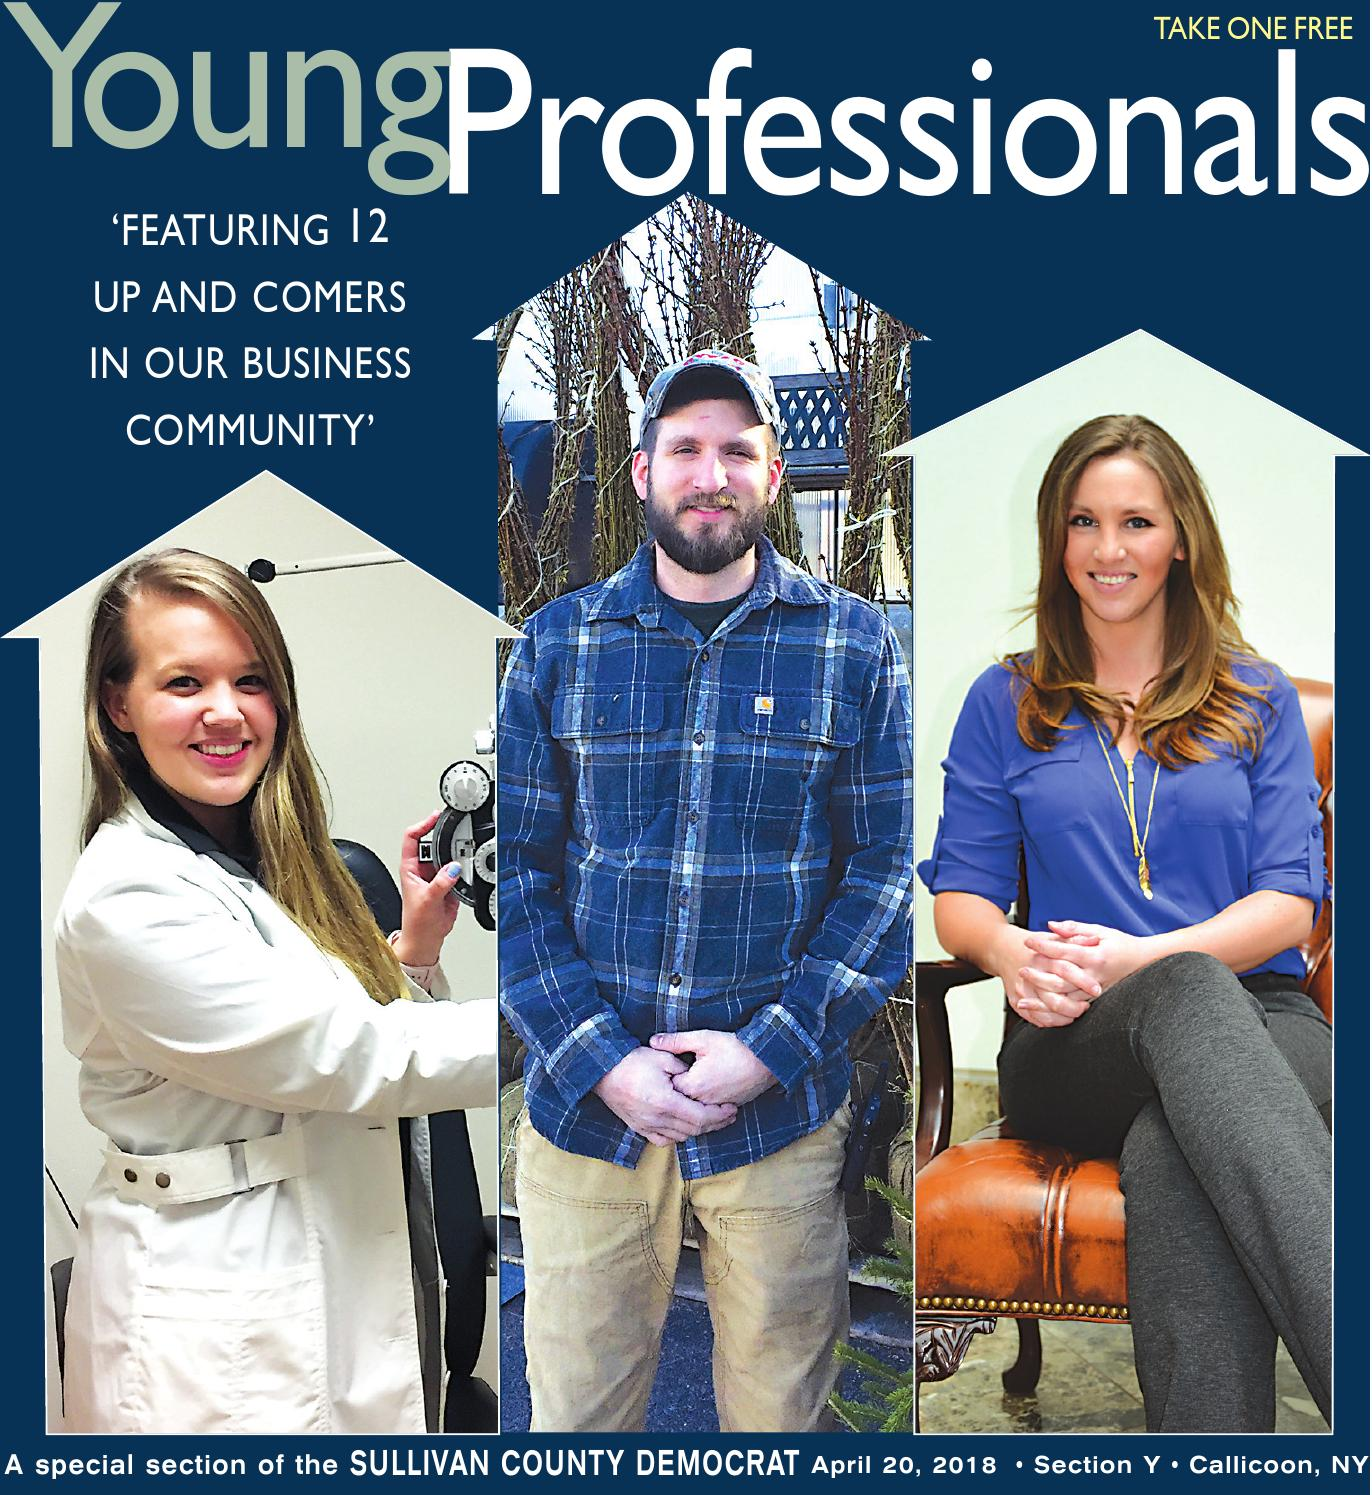 Young Professionals 2018 by Sullivan County Democrat/Catskill-Delaware  Publications - issuu